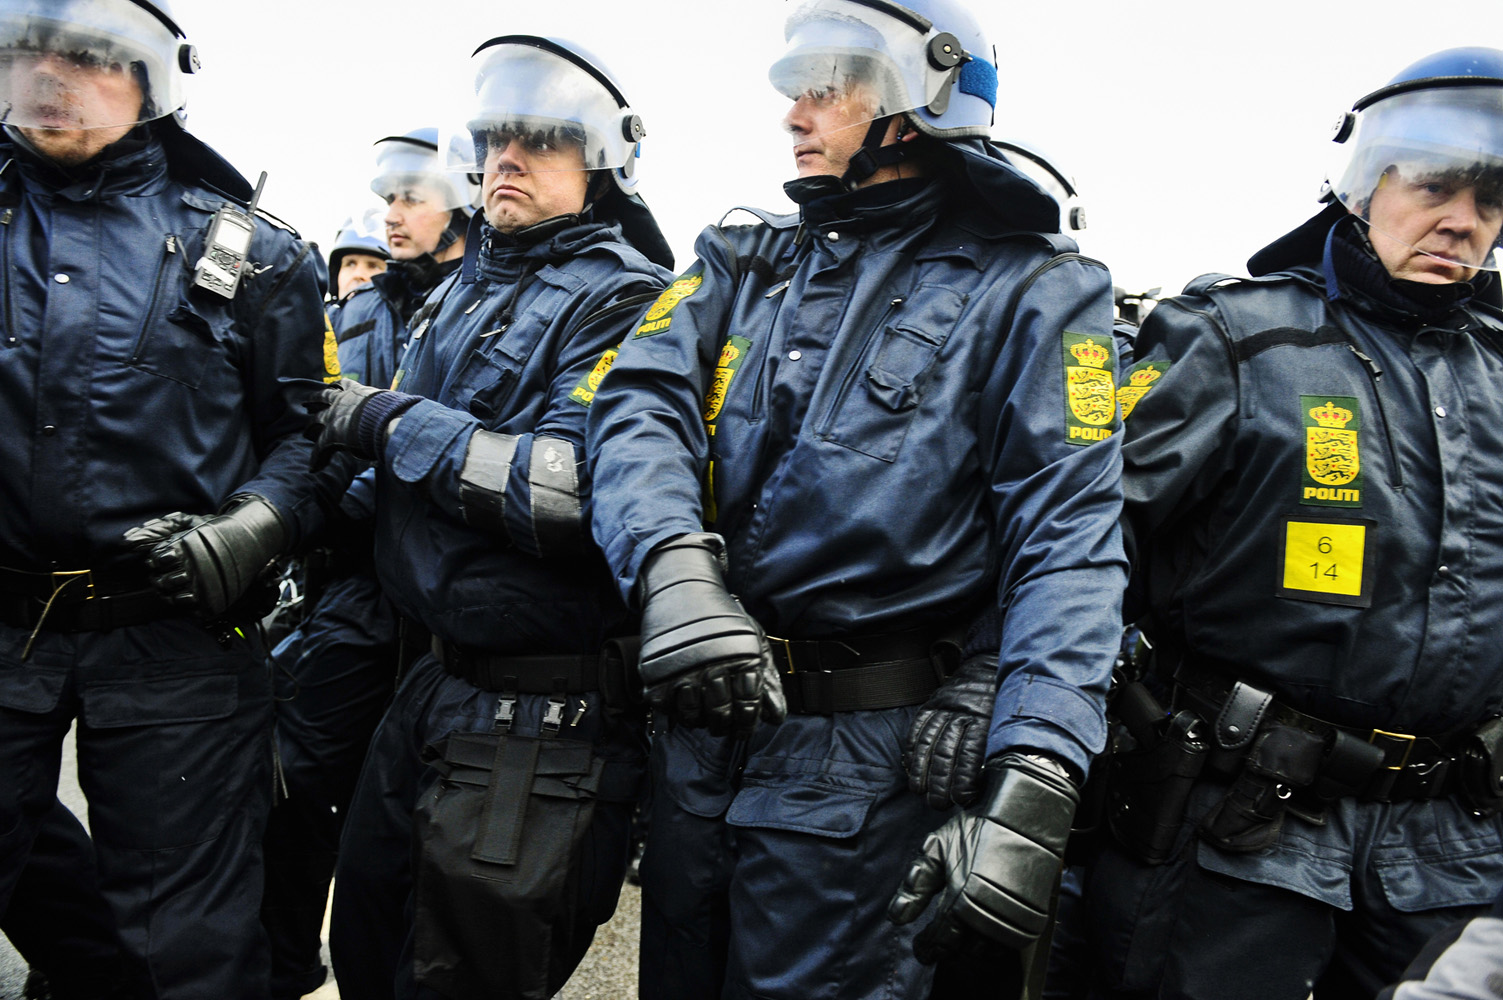 Copenhagen, Denmark - December 16 2009Riot Police pushing back some of the thousand of demonstrators that set off for a planned mass invasion of Bella Center, the conference hall for UN:s climate meeting, Cop-15, in Copenhagen. Reclaim Power march, organized by Climate Justice Action and Climate Justice Now!, was a protest against the outcome of the meeting and the failure to secure a fair, ambitious and binding deal.